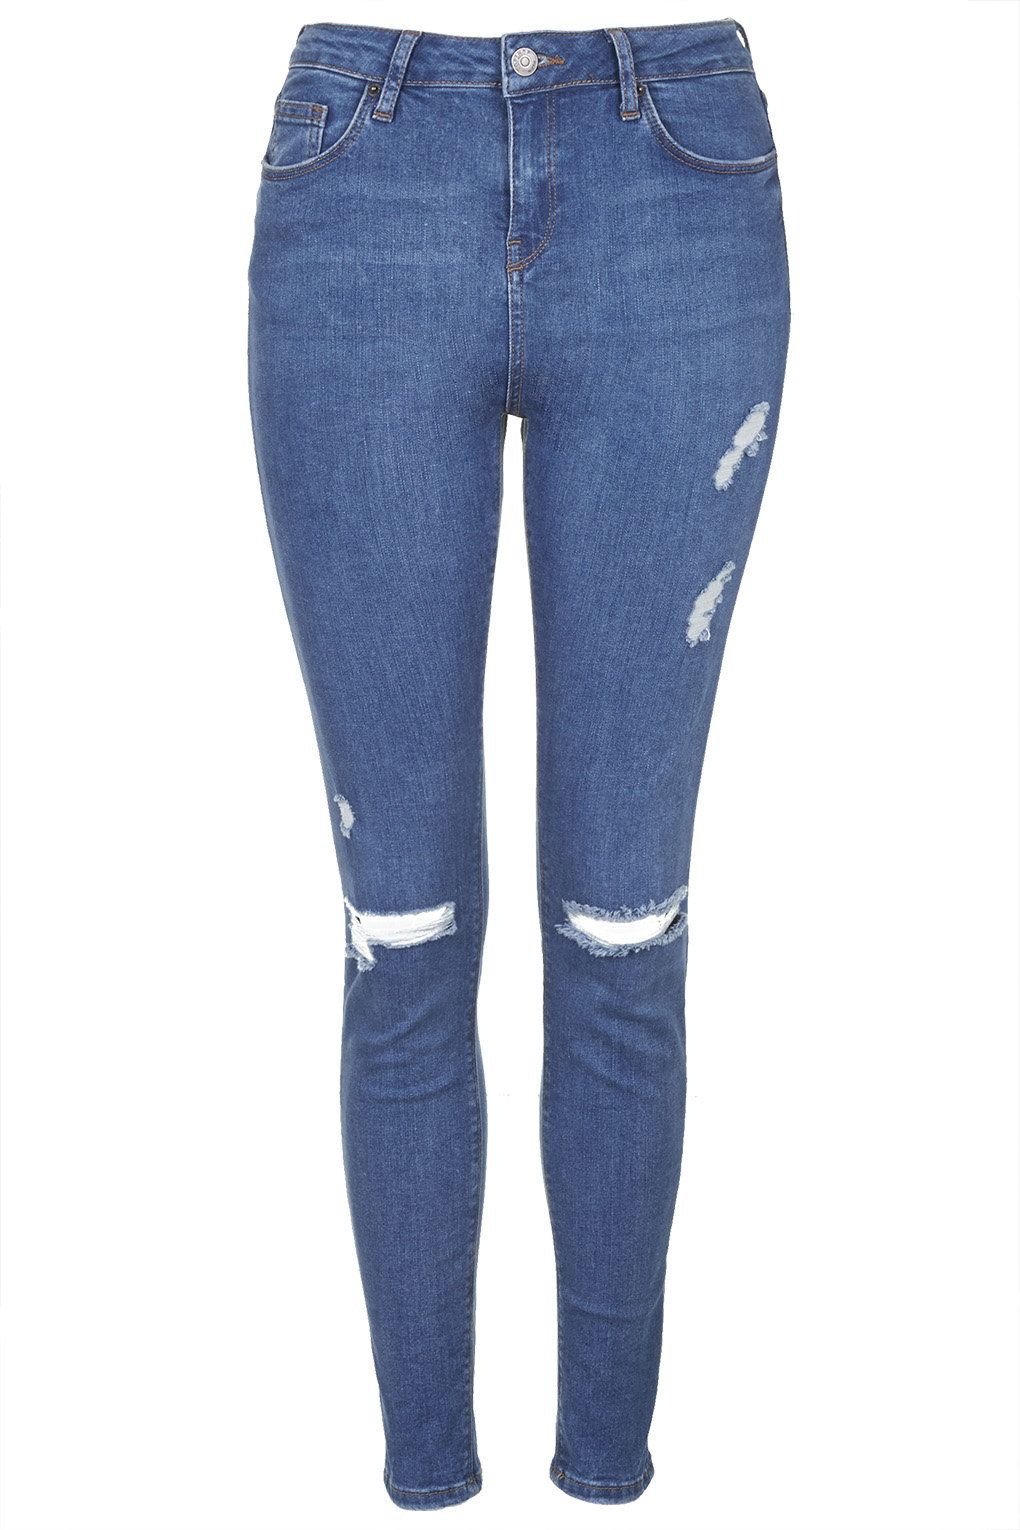 Moto Rip Topshop Fashion Jamie Tall Blue Jeans Jeans qCOwxZSO